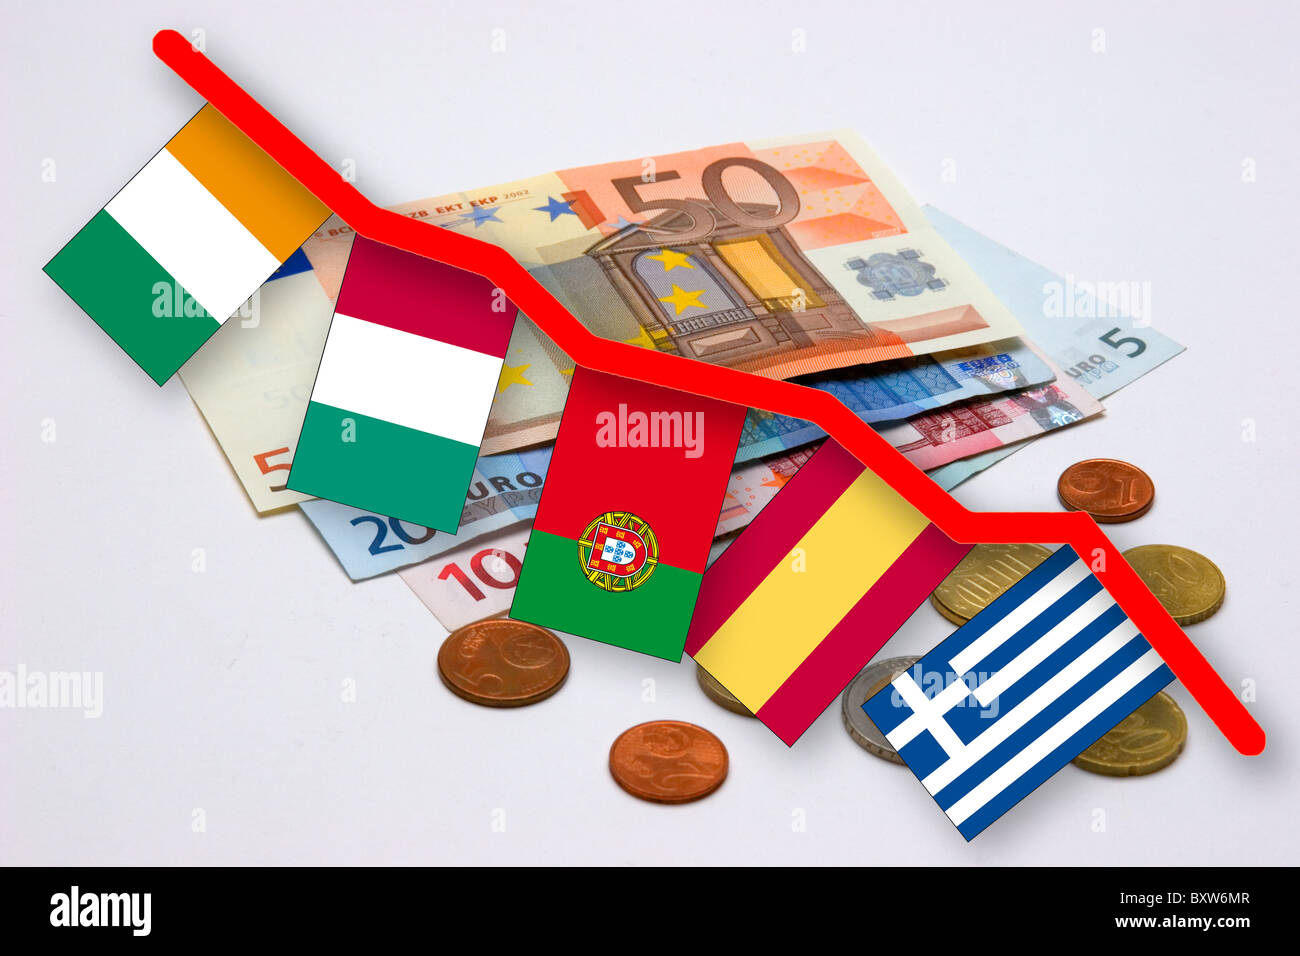 Currency crisis of the eur symbol picture for the loss in value of currency crisis of the eur symbol picture for the loss in value of the euro with flags of the so called pigs states piggs biocorpaavc Images